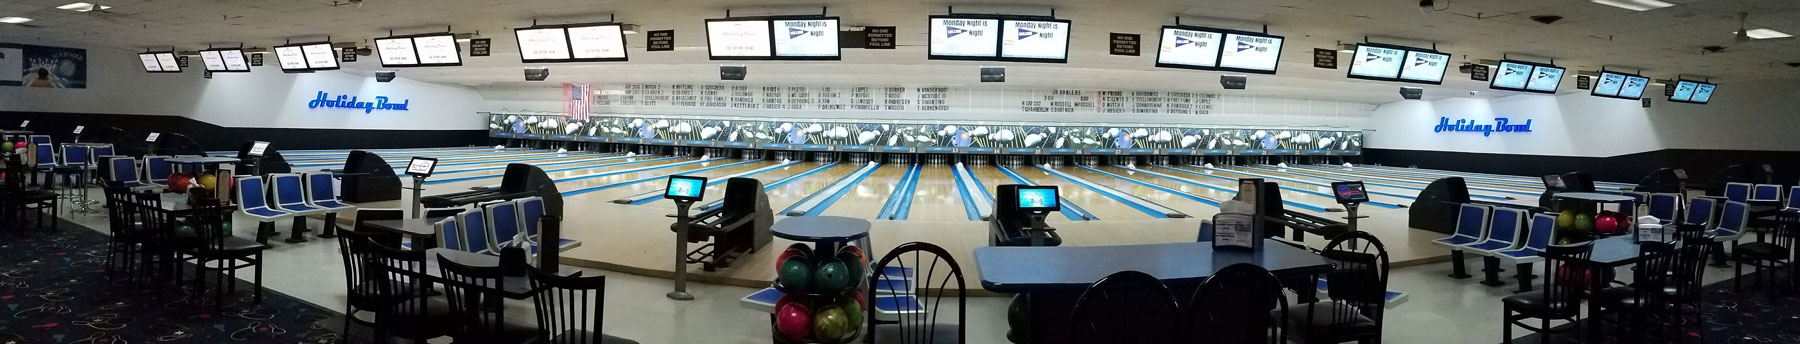 Holiday Bowl NJ Bowling alleys